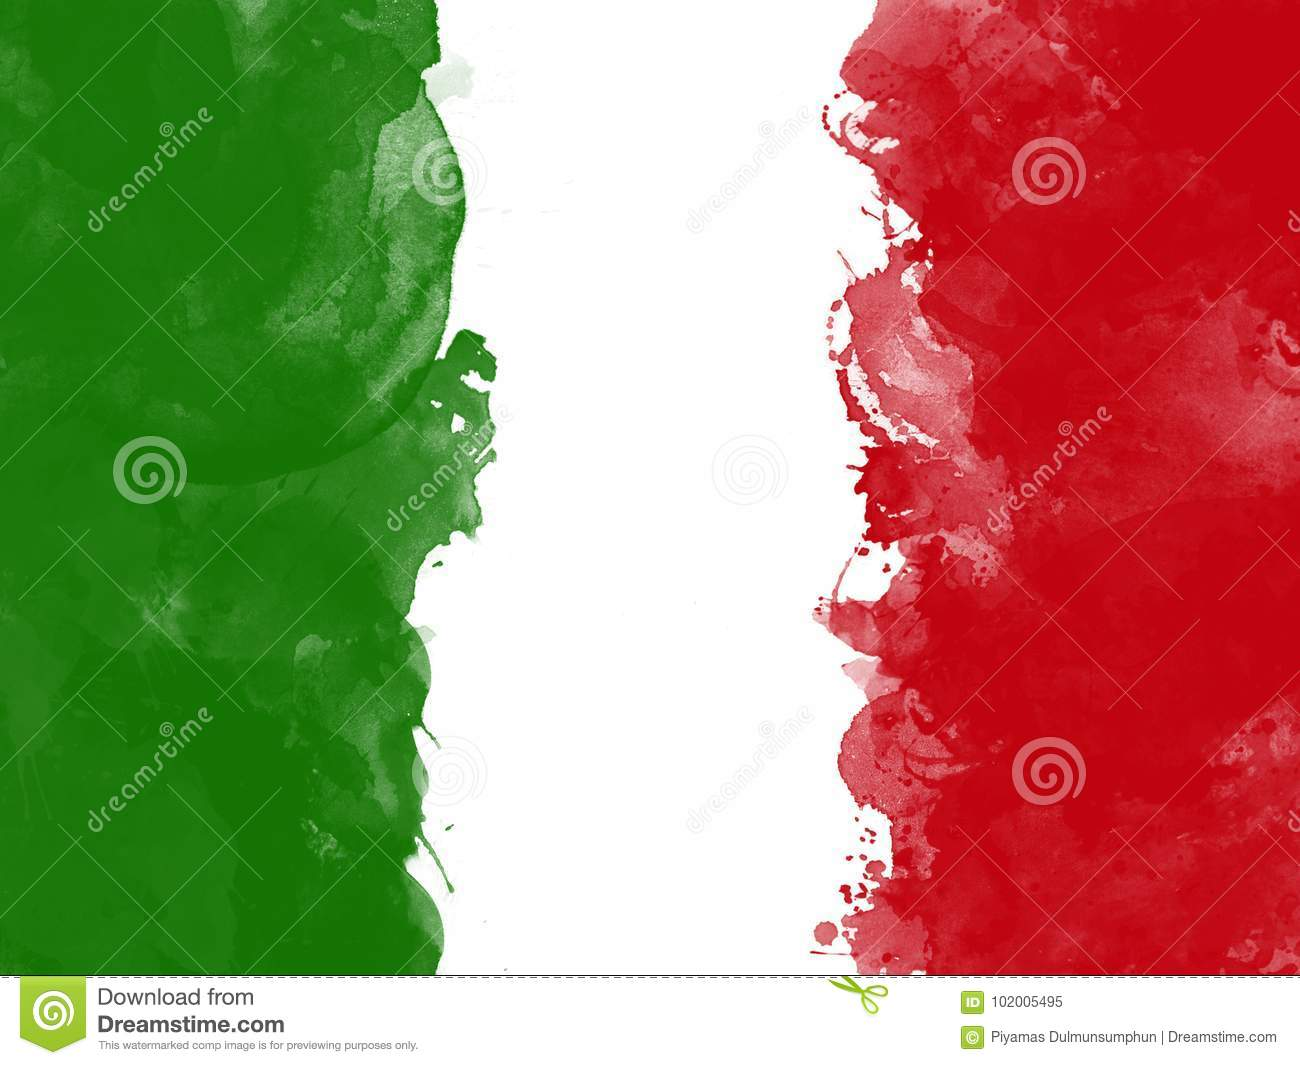 Flag of Italy by watercolor paint brush, grunge style